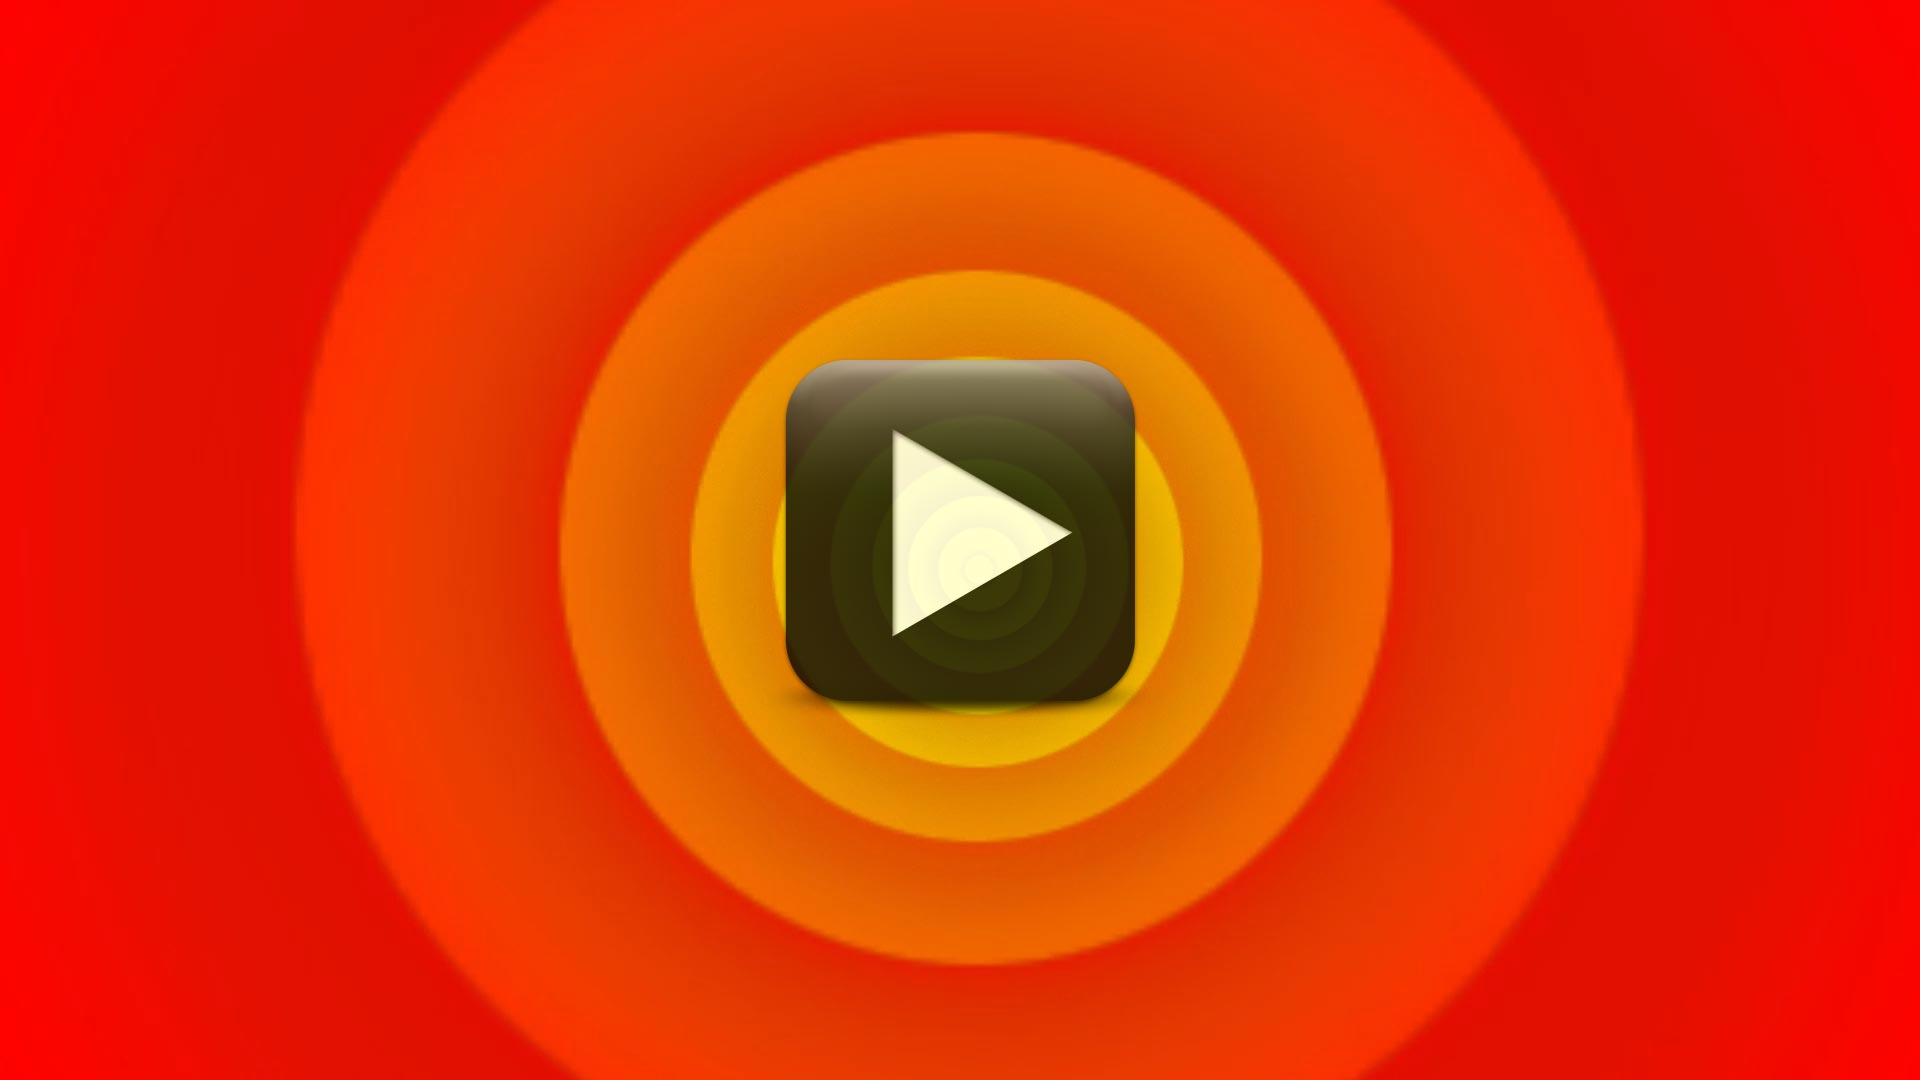 Background Video Effects HD Free Download